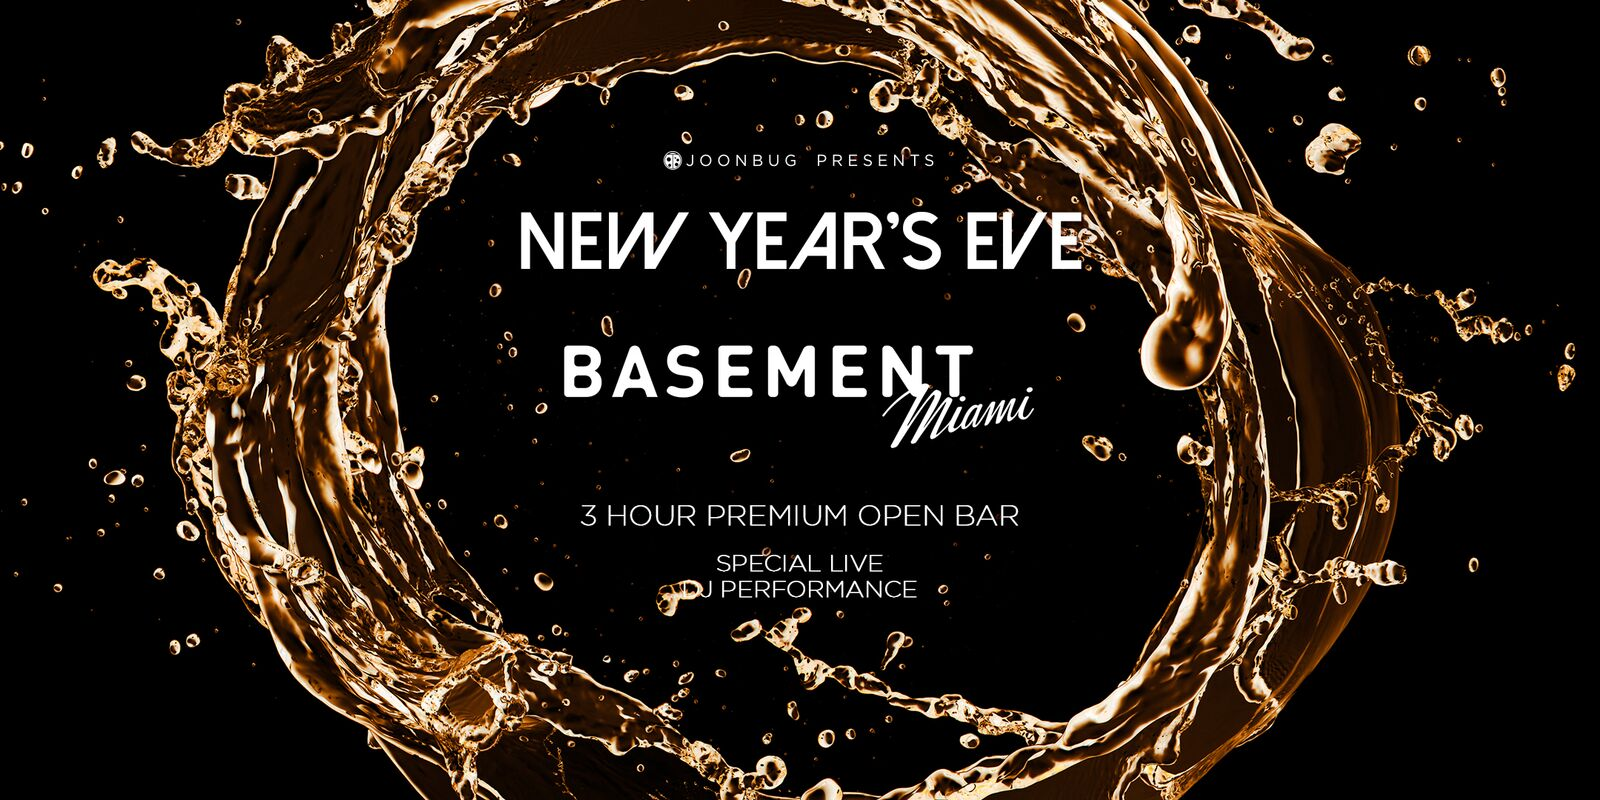 miami nye events new york city nye events meatpacking social club new york city nye events new york city nye events new york city nye events